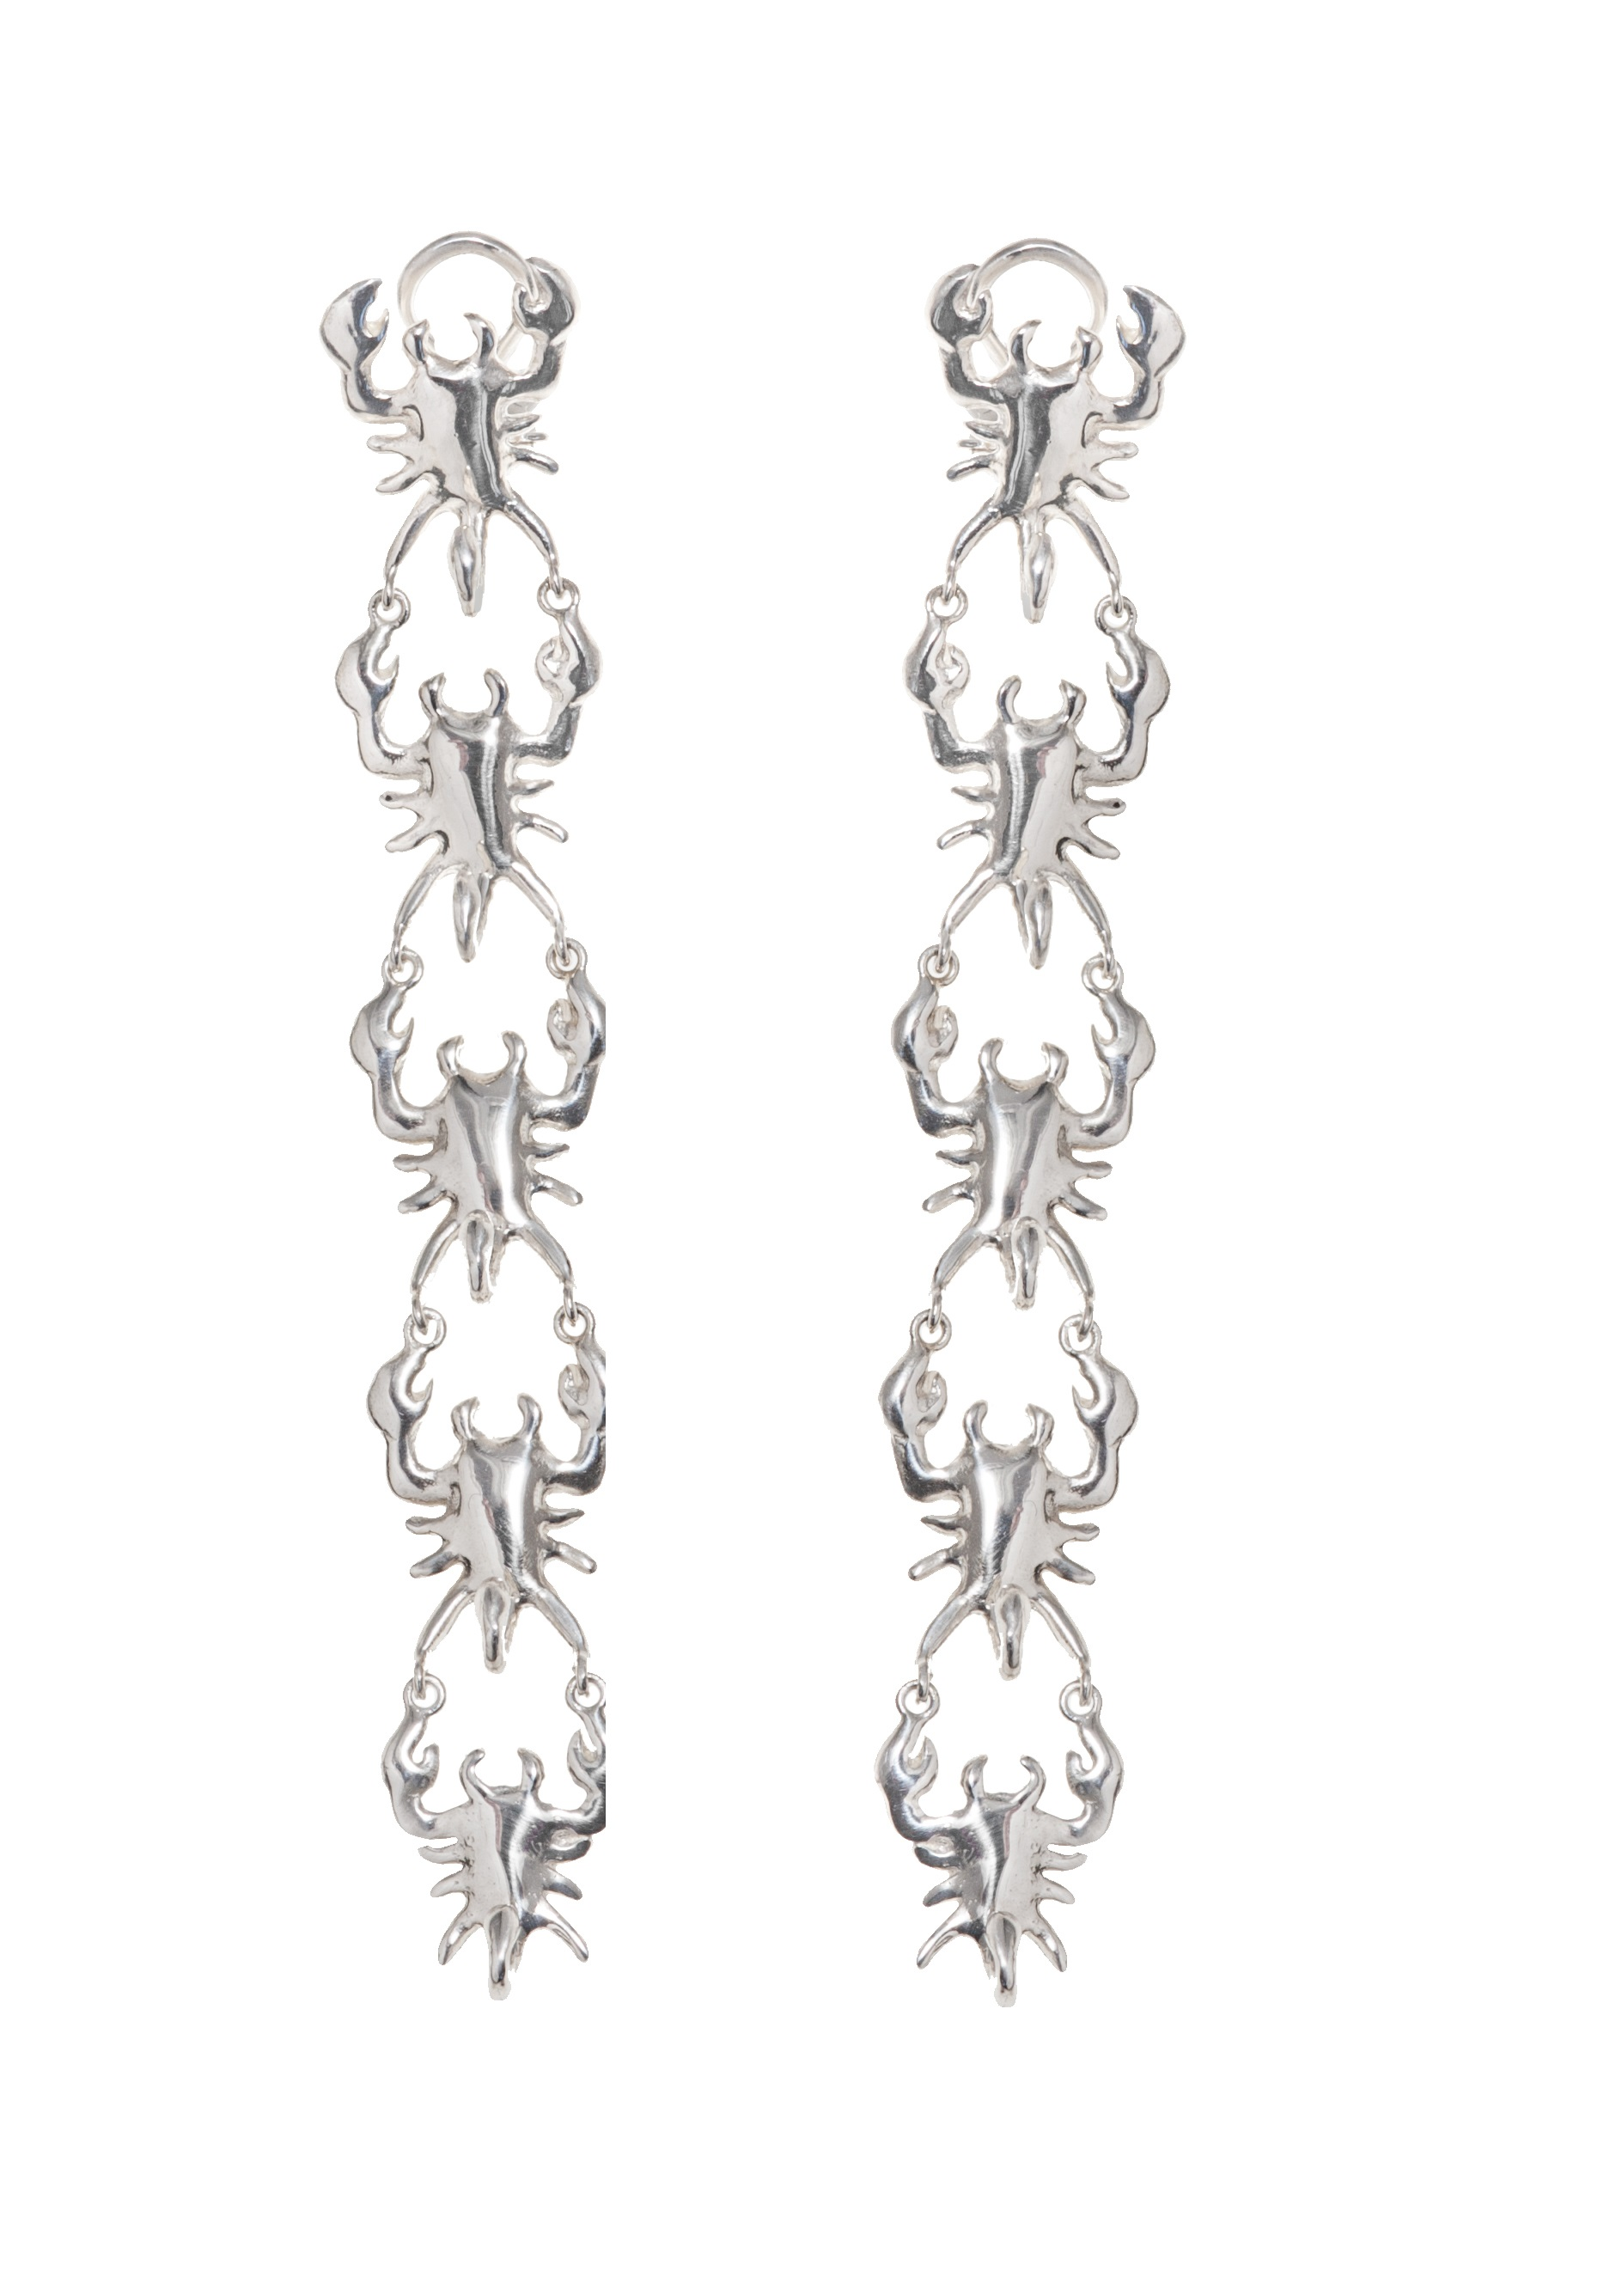 5 scorpios silver earrings